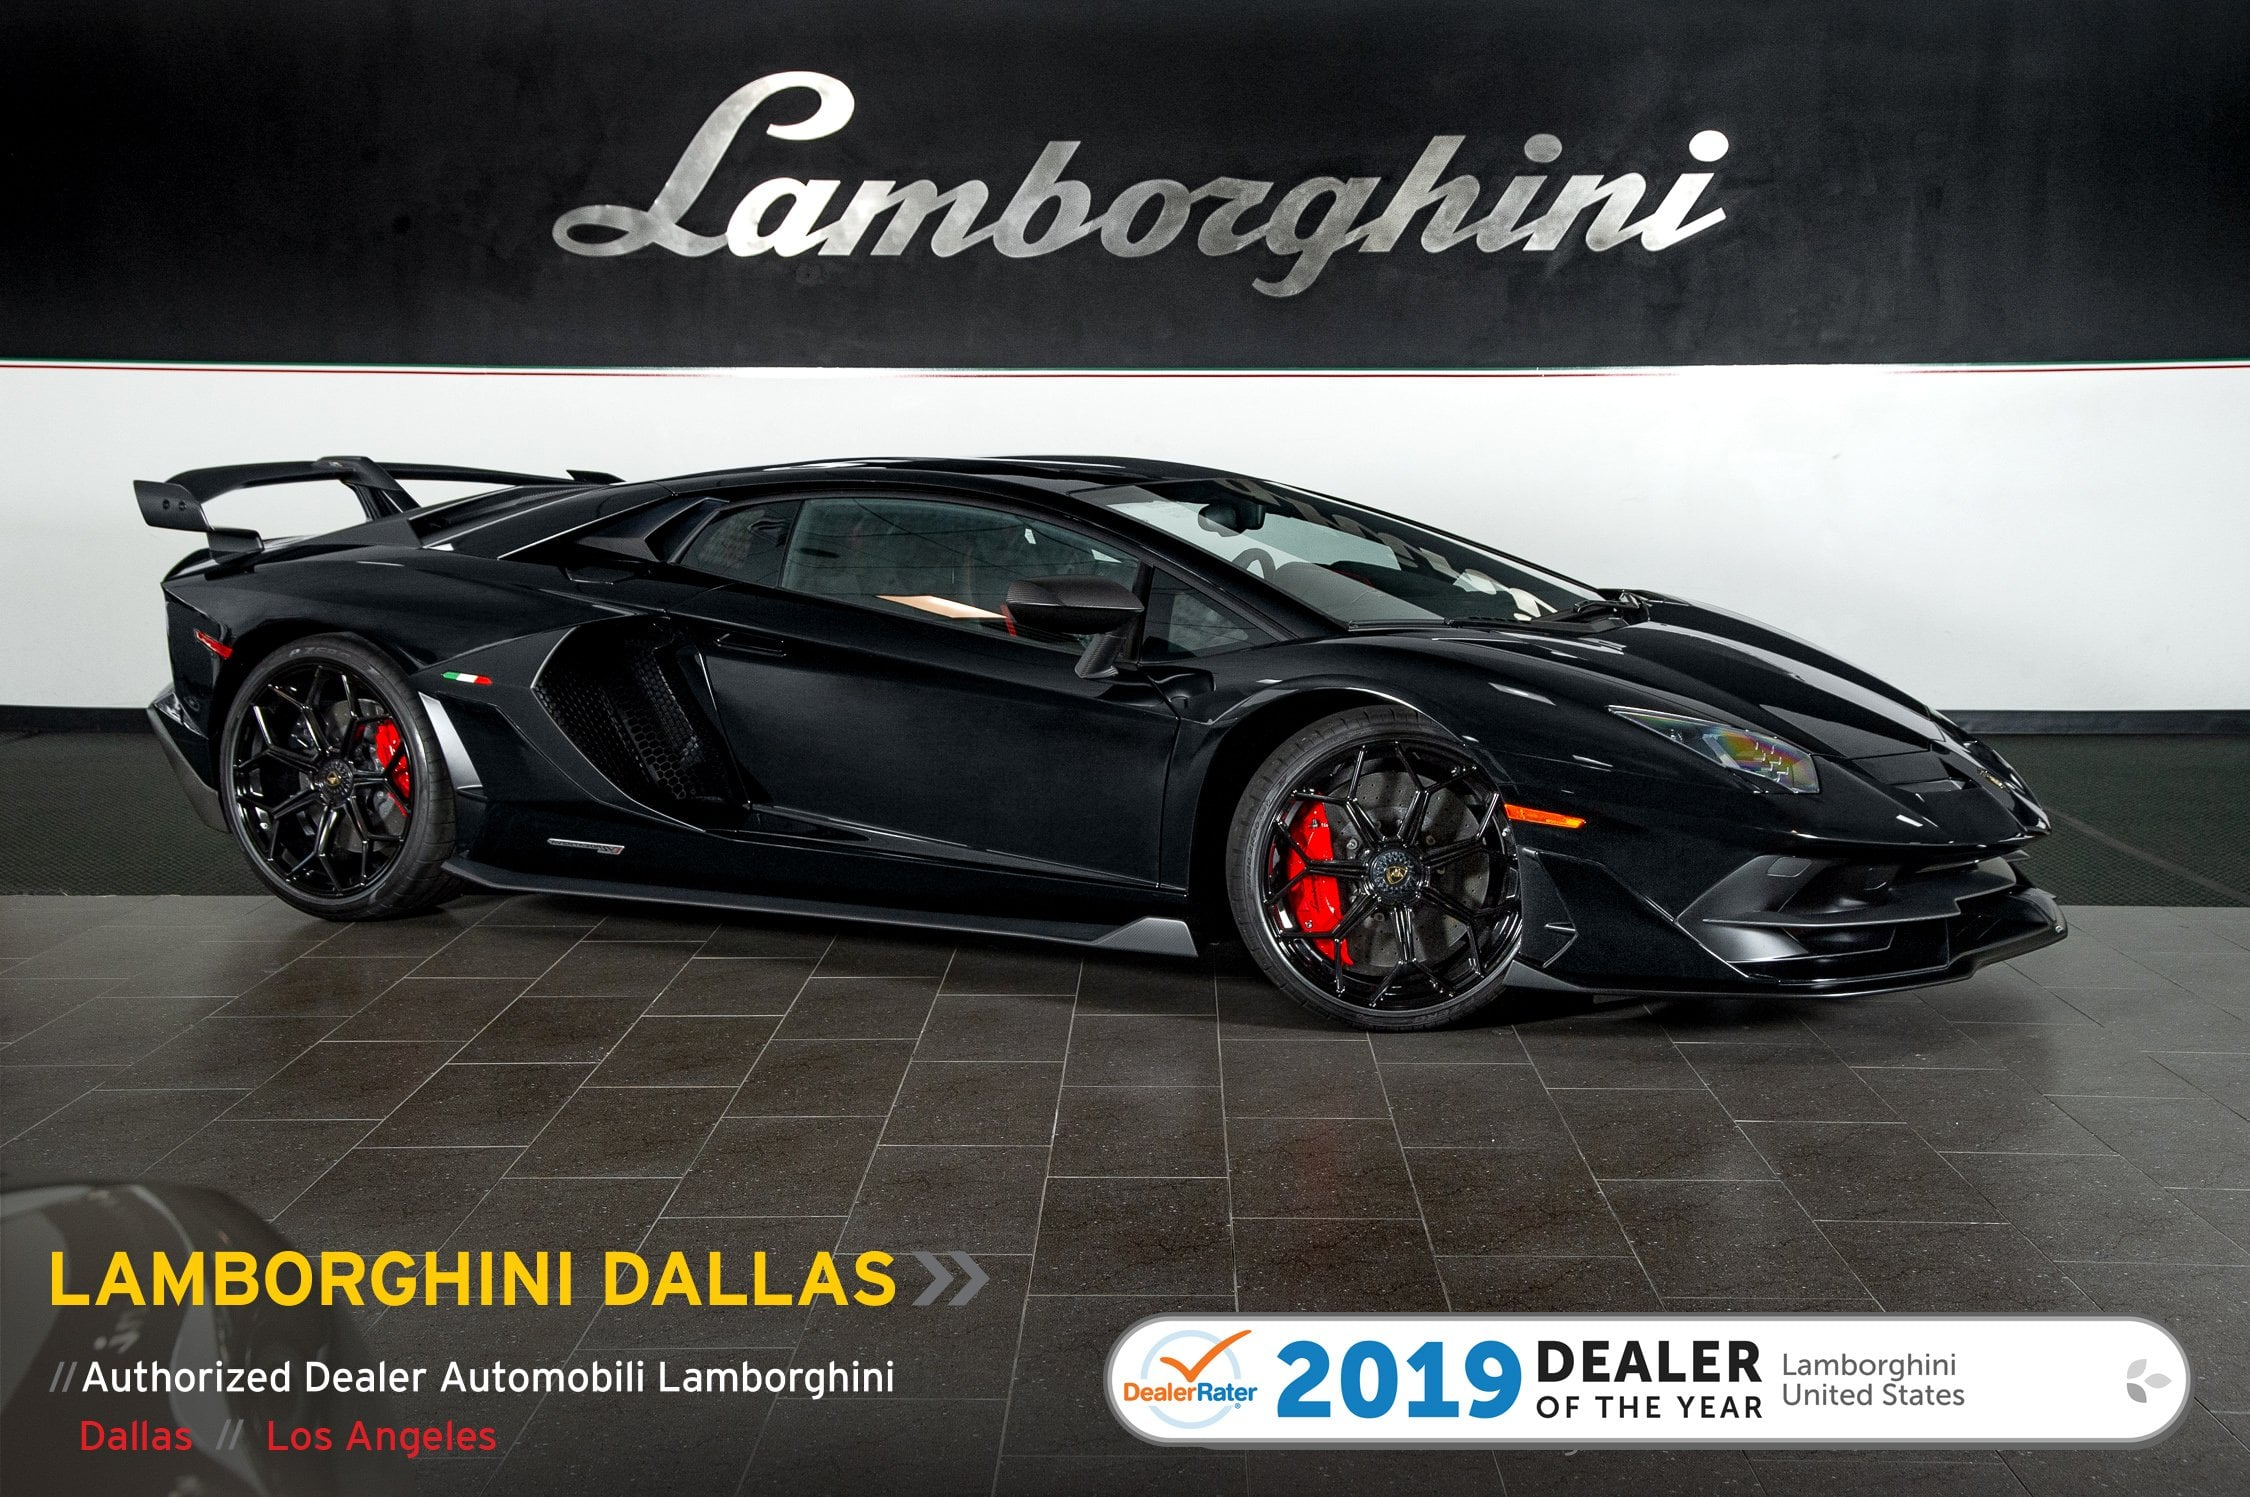 Used 2019 Lamborghini Aventador Svj For Sale Richardson